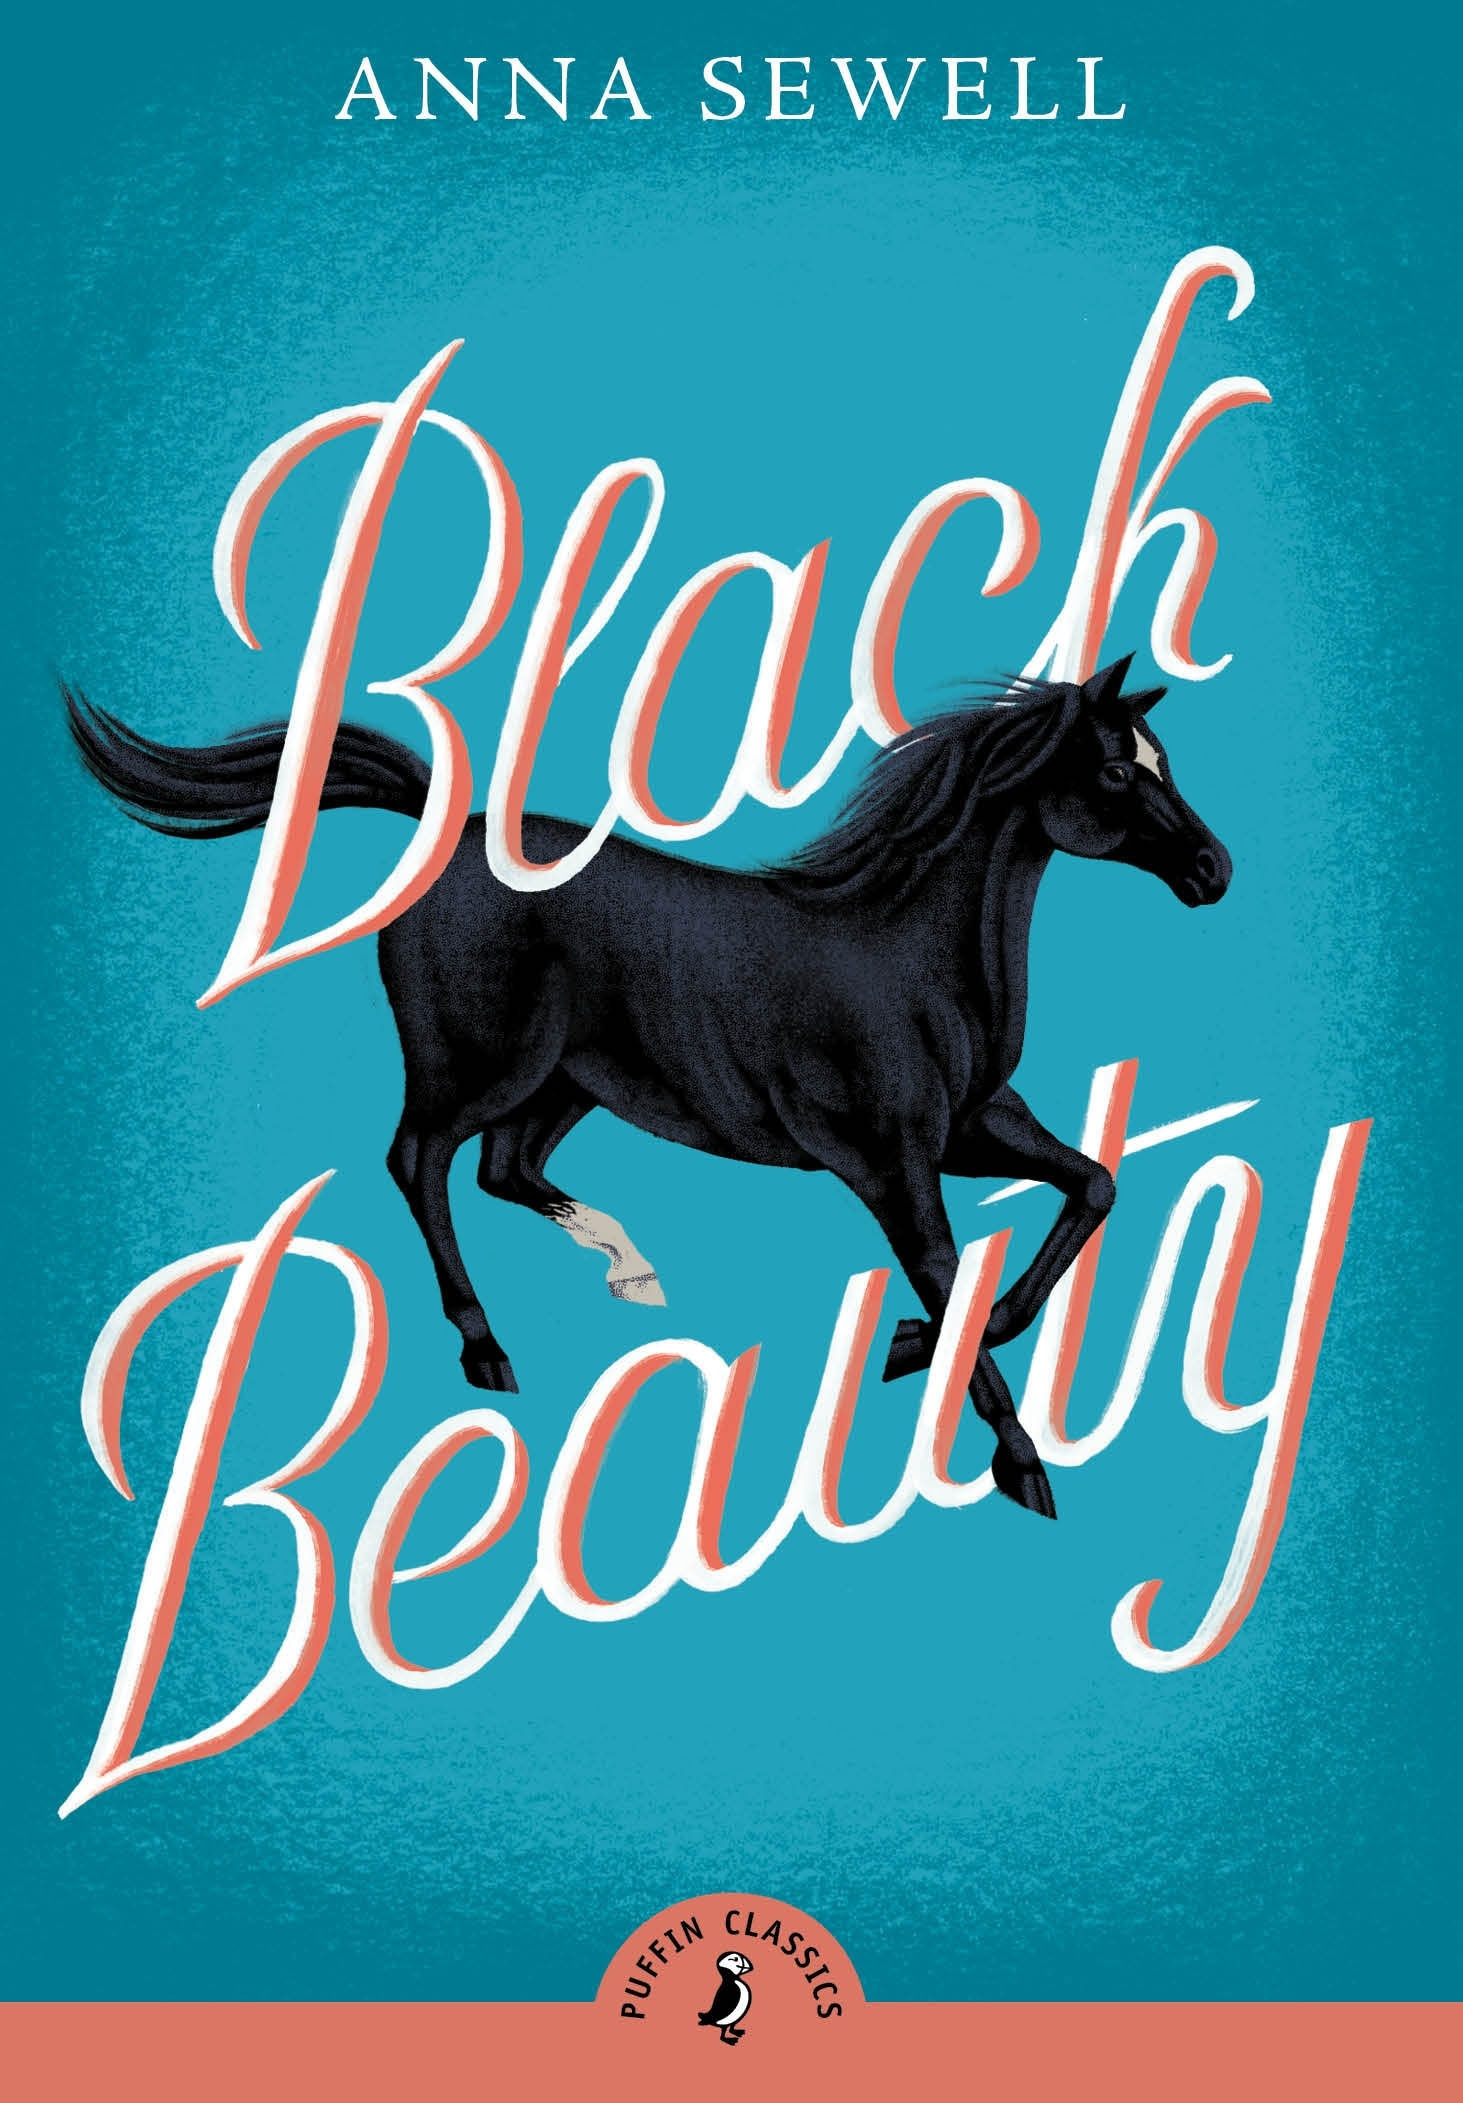 Black Beauty Original Book Cover : Black beauty by anna sewell penguin books australia